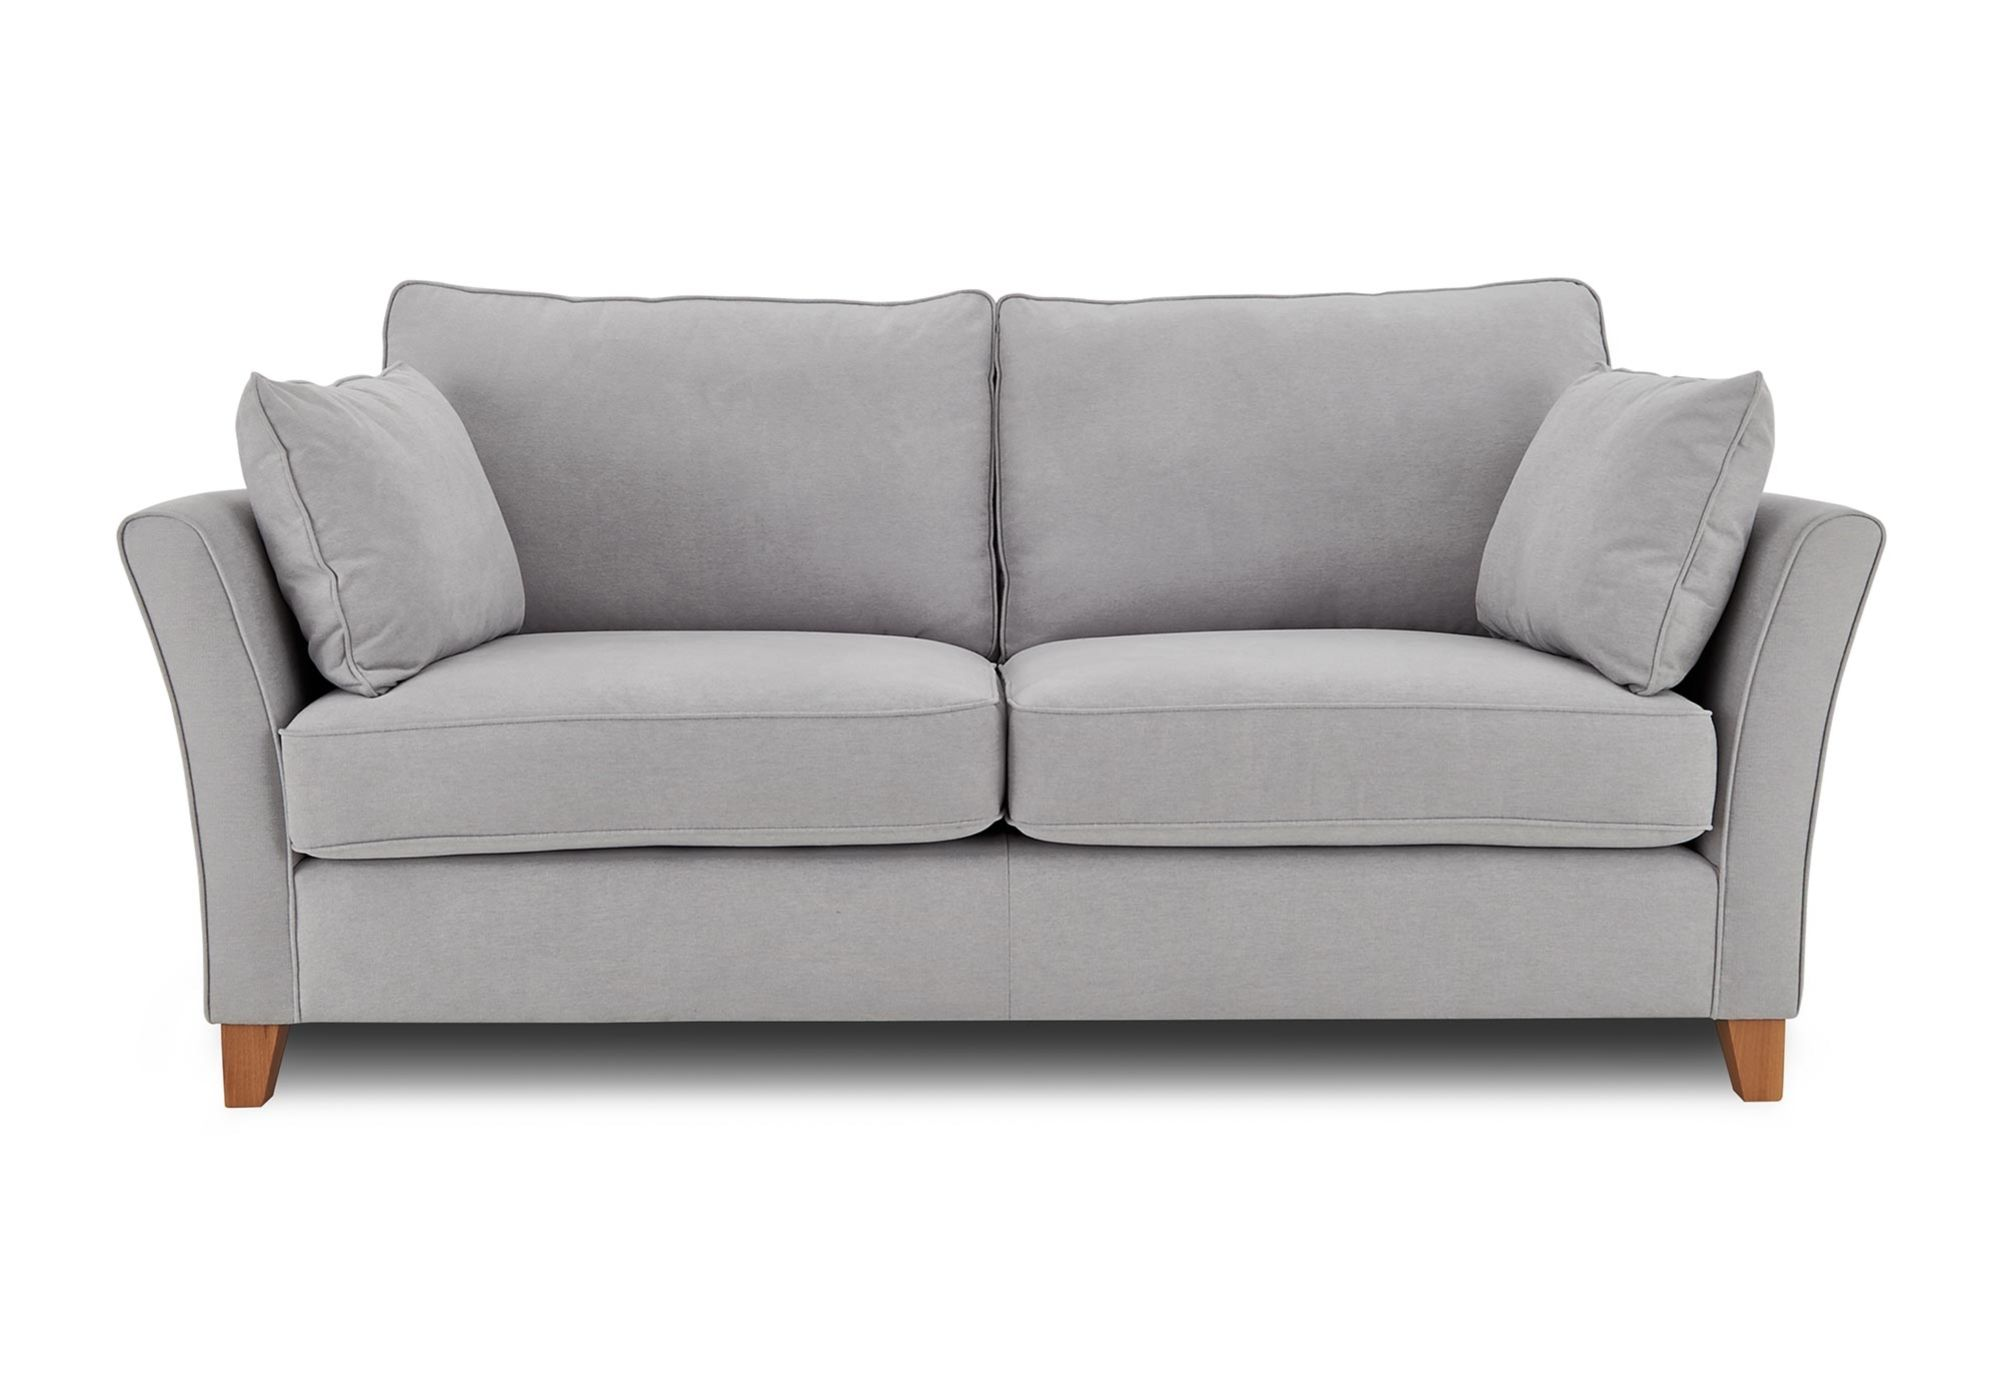 Sofa Set Offer Up Offers On Sofas Sofa Factory Price Offers New Sofas 27000